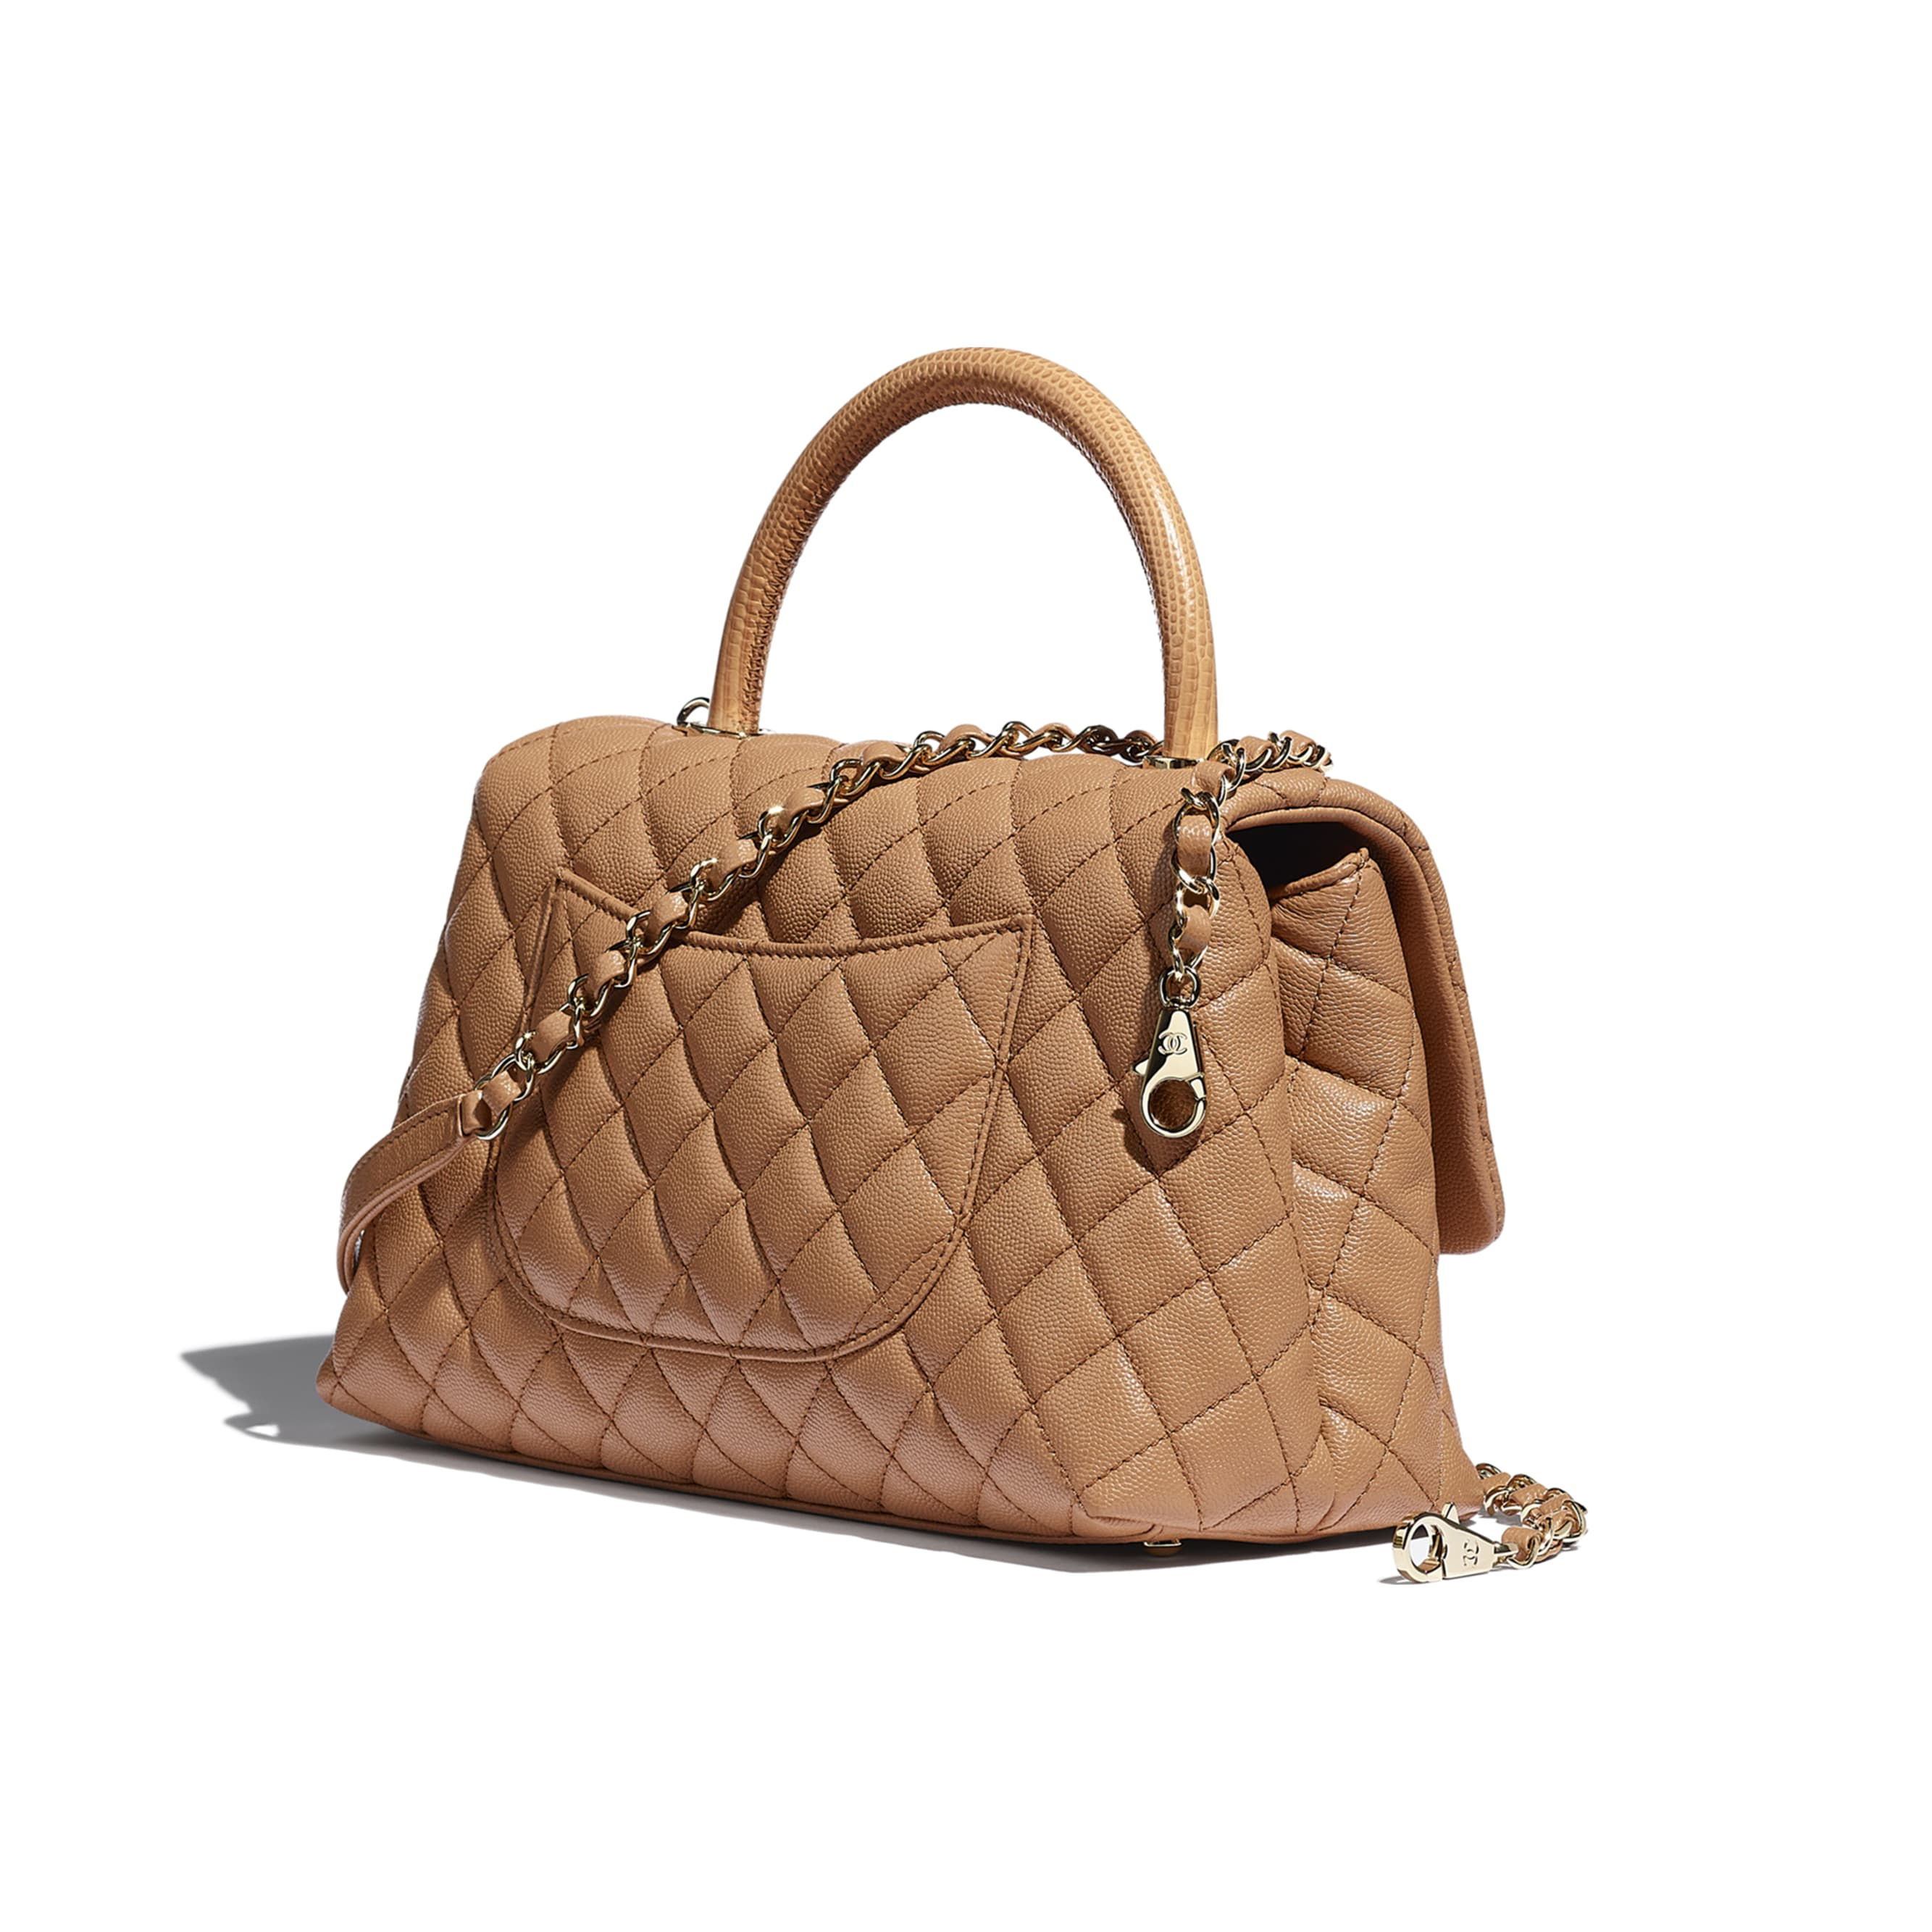 Large Flap Bag With Top Handle - Brown - Grained Calfskin, Lizard Embossed Calfskin & Gold-Tone Metal - CHANEL - Other view - see standard sized version